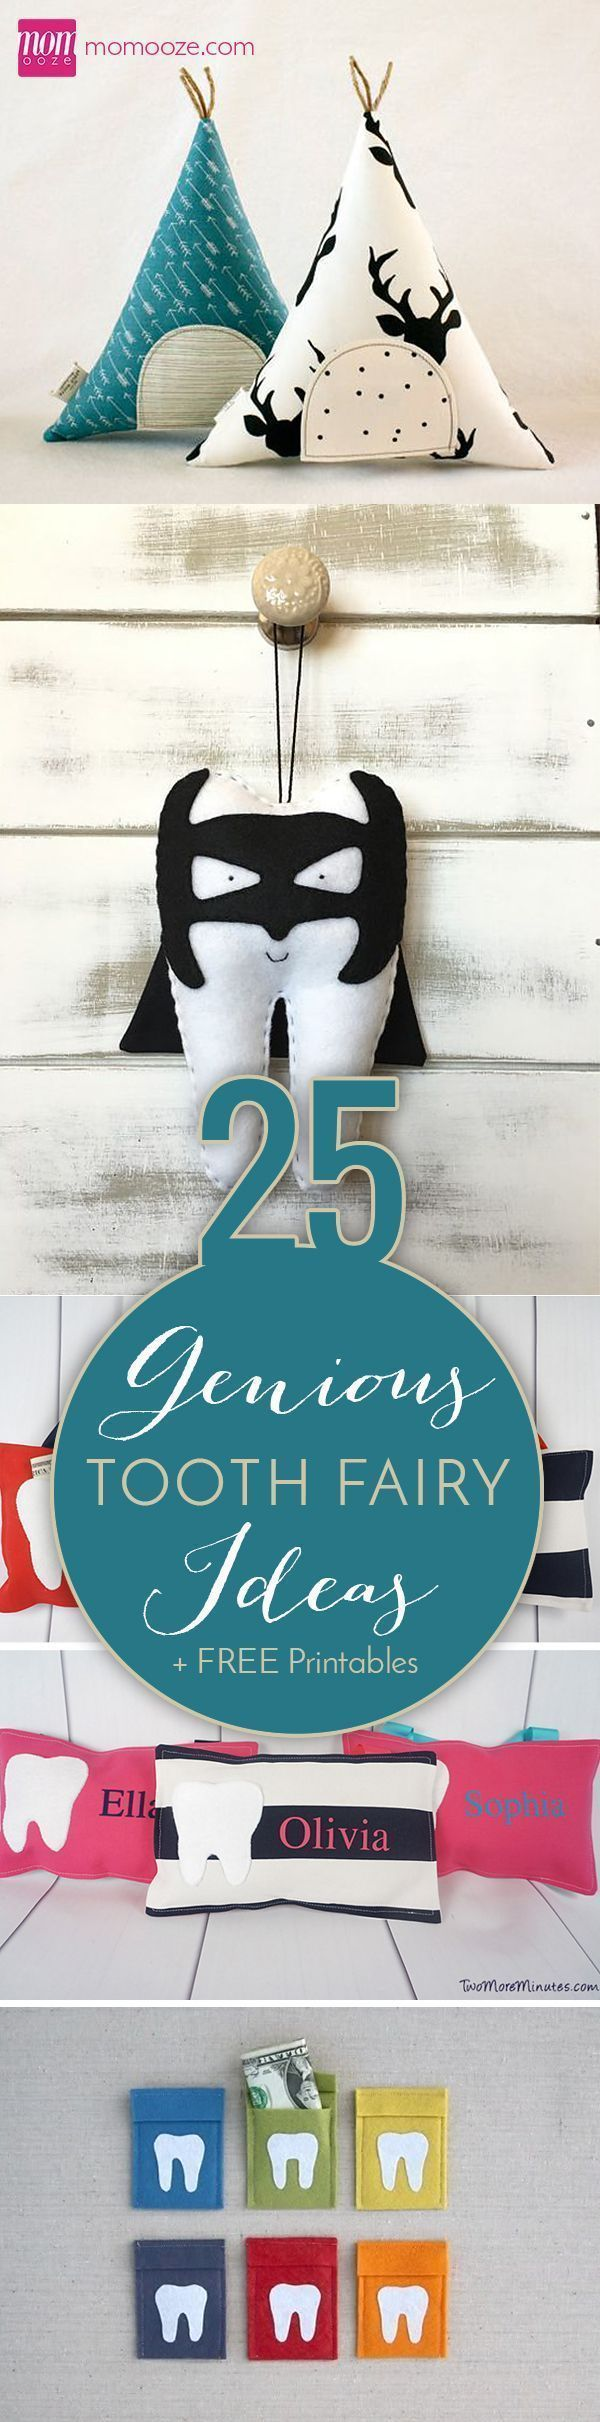 25+ Genius Tooth Fairy Ideas & Free Printables #toothfairyideas 25+ Genius Tooth Fairy Ideas & Free Printables #momooze #toothfairyideas 25+ Genius Tooth Fairy Ideas & Free Printables #toothfairyideas 25+ Genius Tooth Fairy Ideas & Free Printables #momooze #toothfairyideas 25+ Genius Tooth Fairy Ideas & Free Printables #toothfairyideas 25+ Genius Tooth Fairy Ideas & Free Printables #momooze #toothfairyideas 25+ Genius Tooth Fairy Ideas & Free Printables #toothfairyideas 25+ Genius Tooth Fairy Id #toothfairyideas